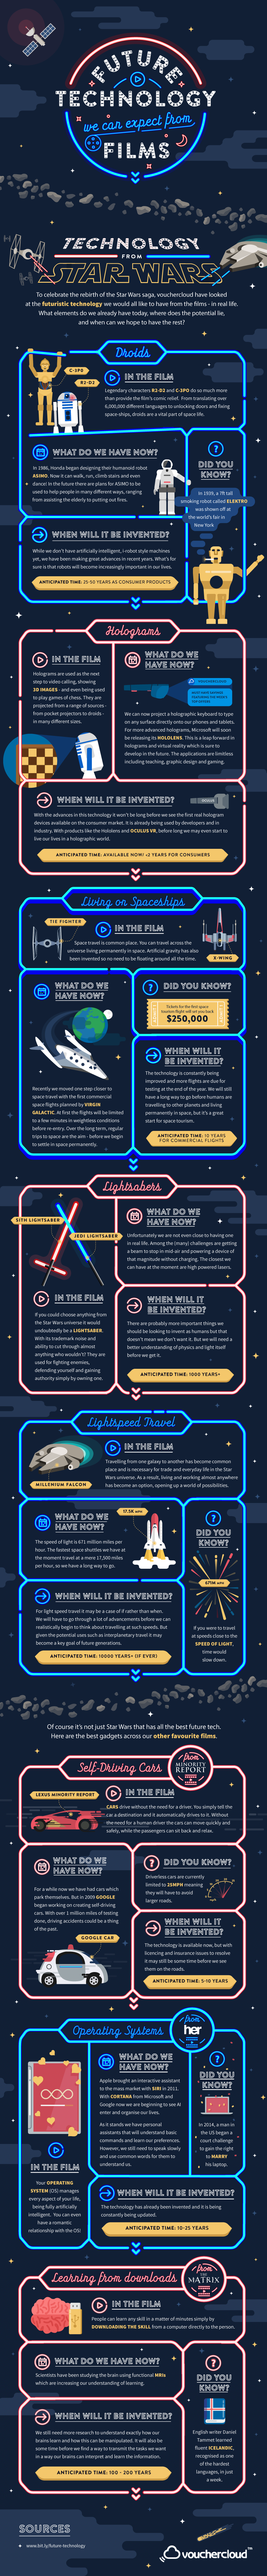 an infographic showing how movies inspired many of our present high tech inventions.